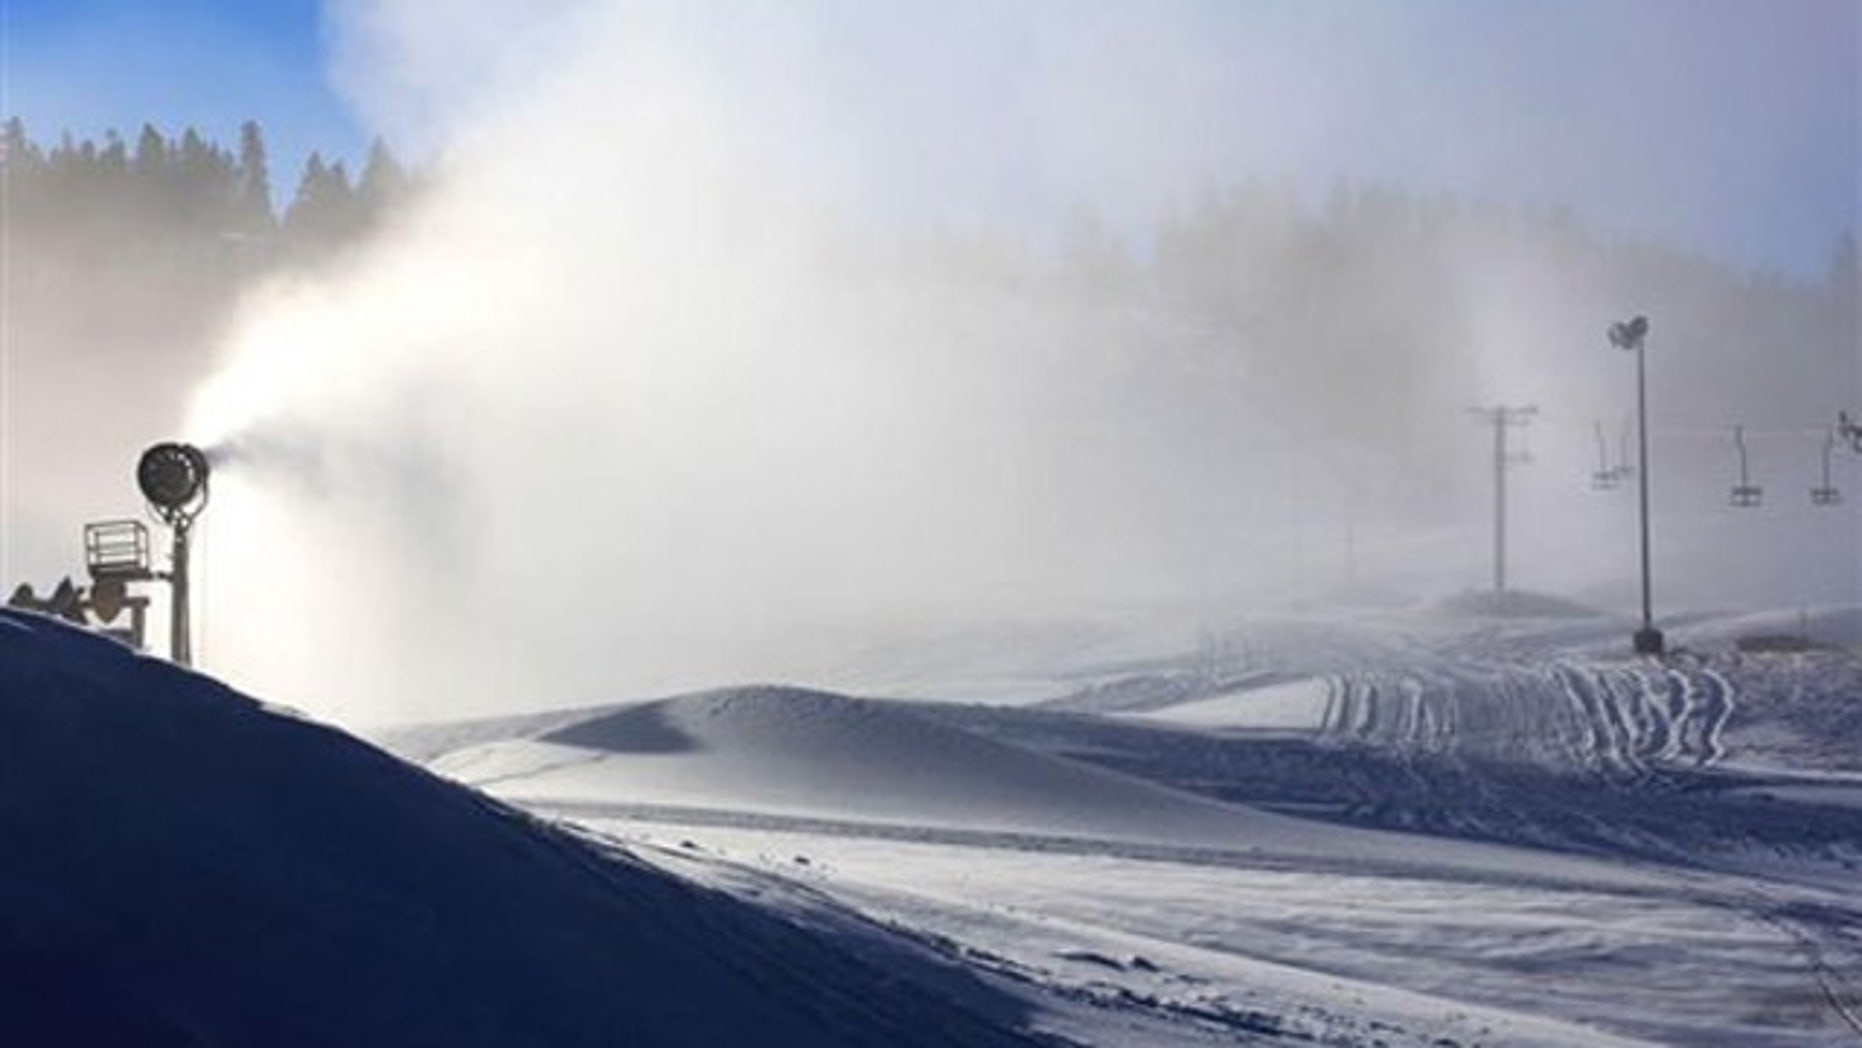 Nov. 20, 2011: Some New Mexico ski areas are celebrating stellar holiday weekends with more terrain open than in previous years.